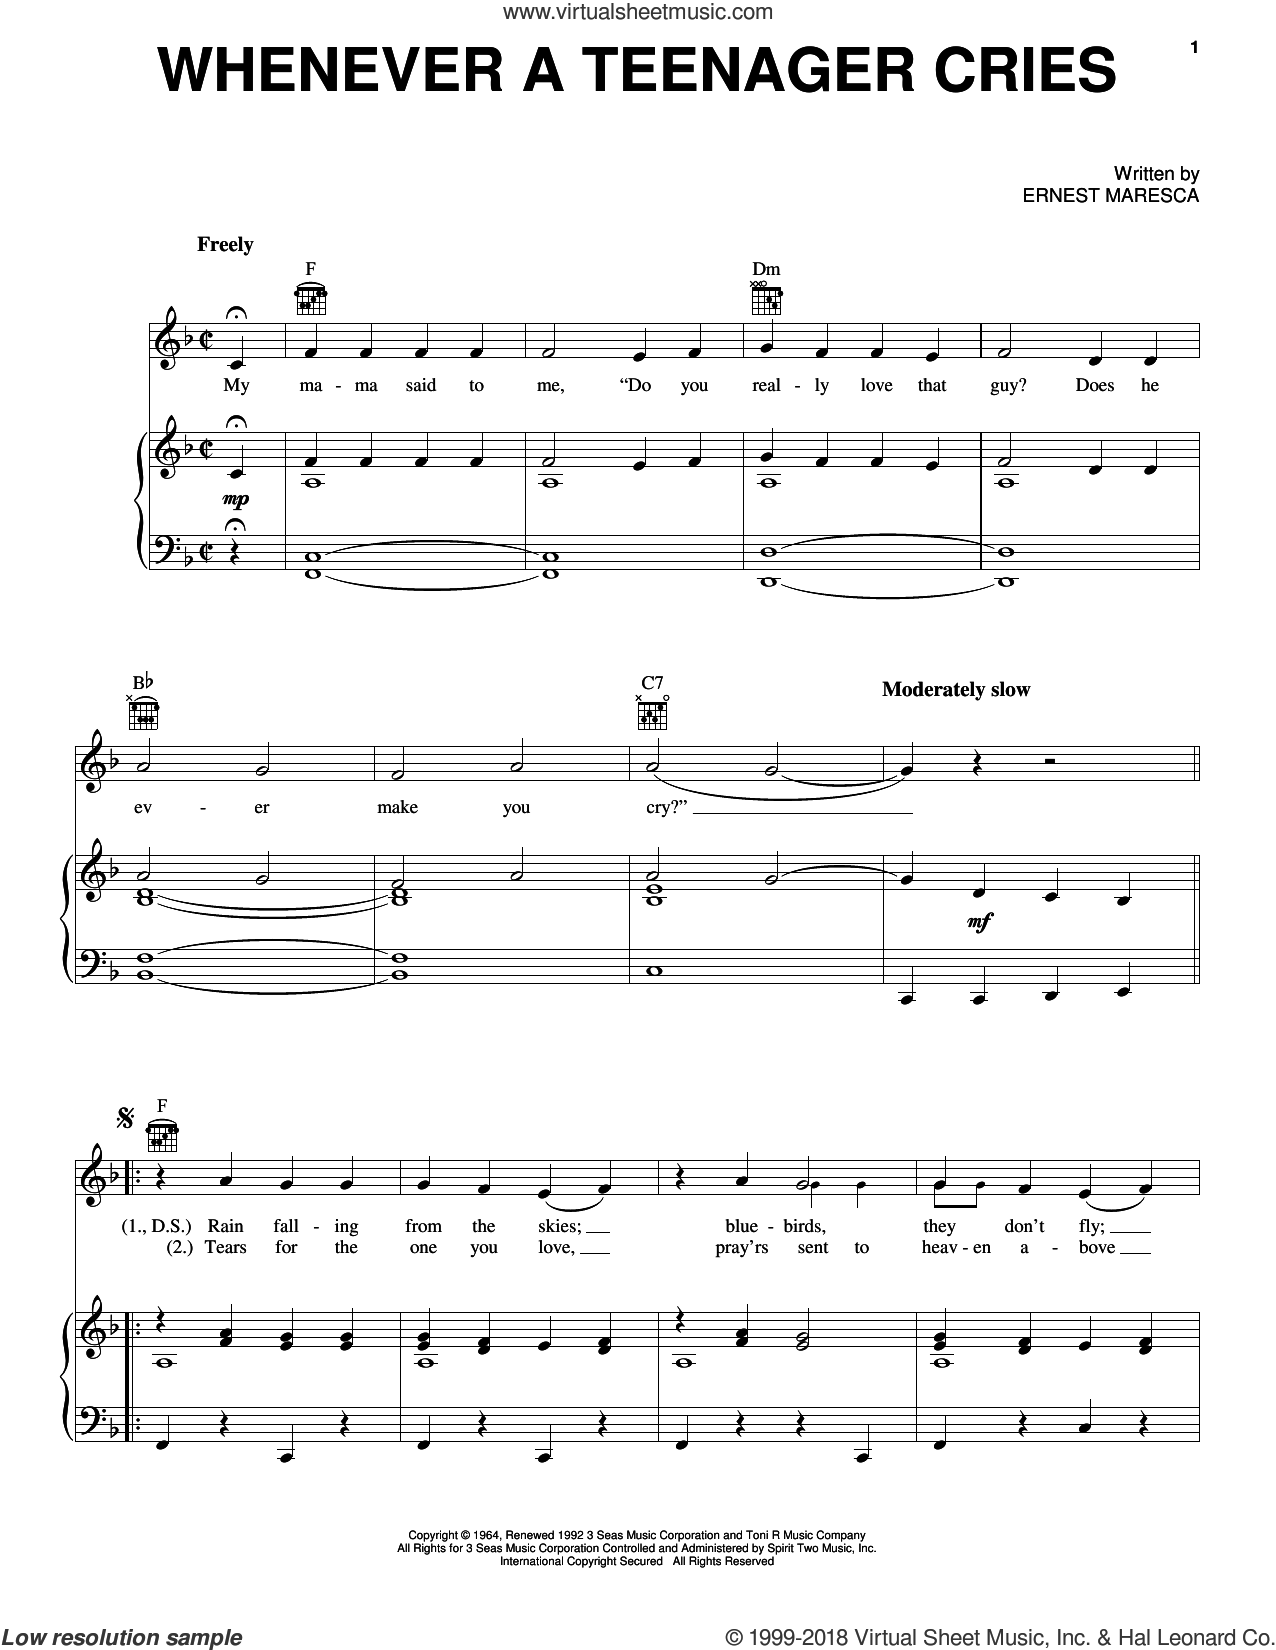 Whenever A Teenager Cries sheet music for voice, piano or guitar by Reparata & The Delrons and Ernie Maresca, intermediate